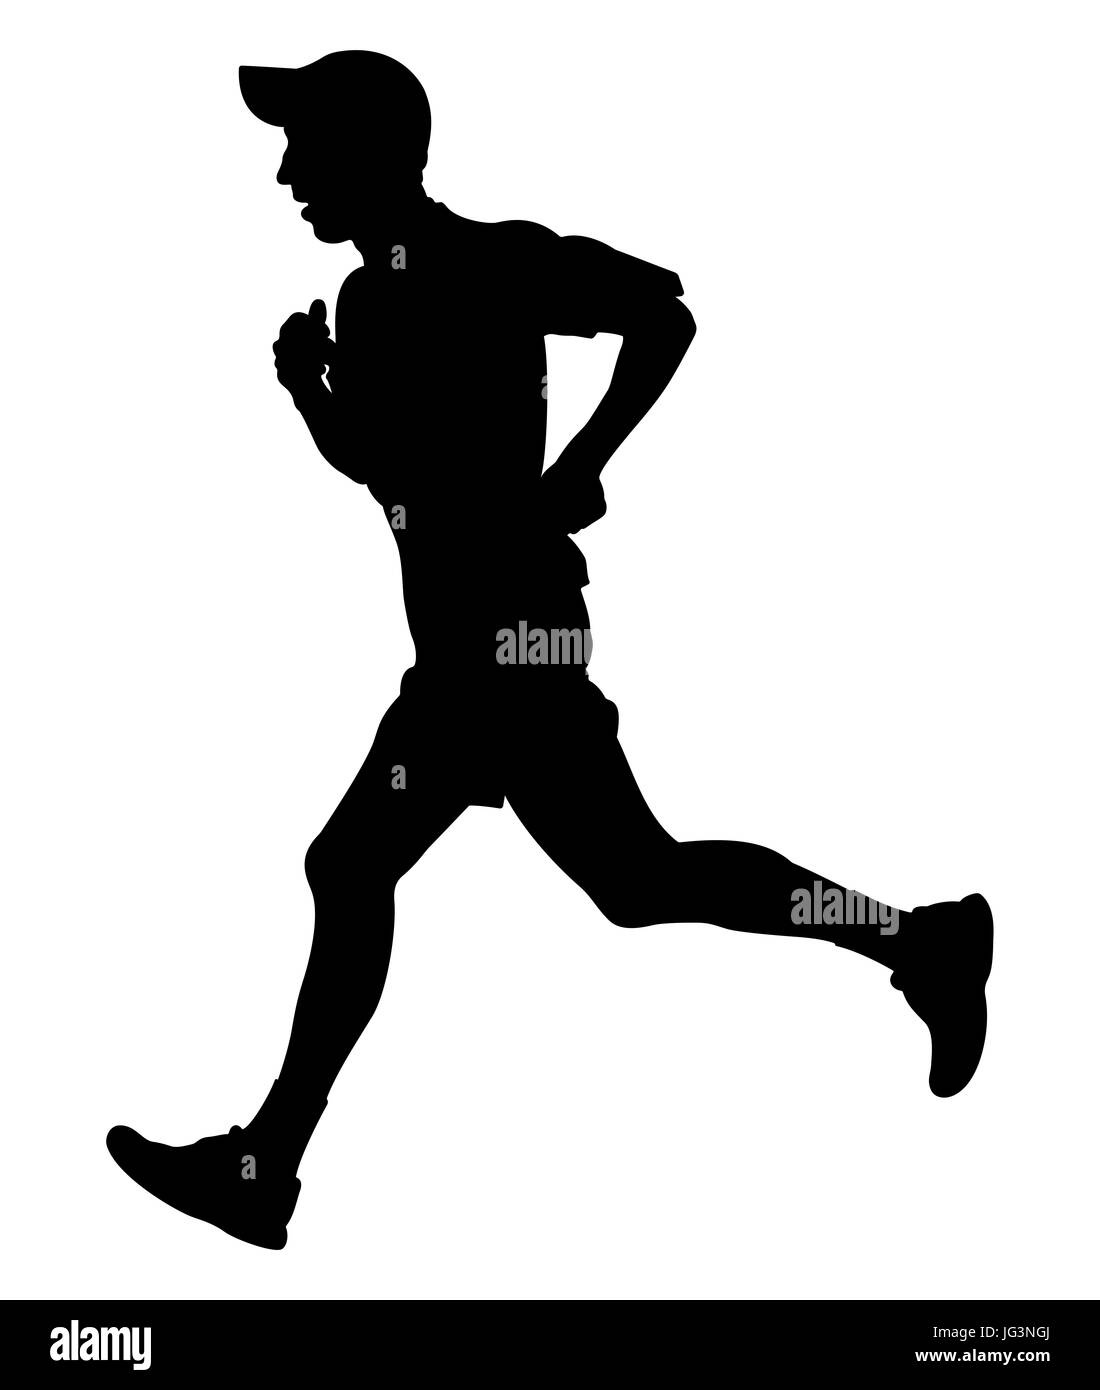 marathon runner silhouette male cut out stock images